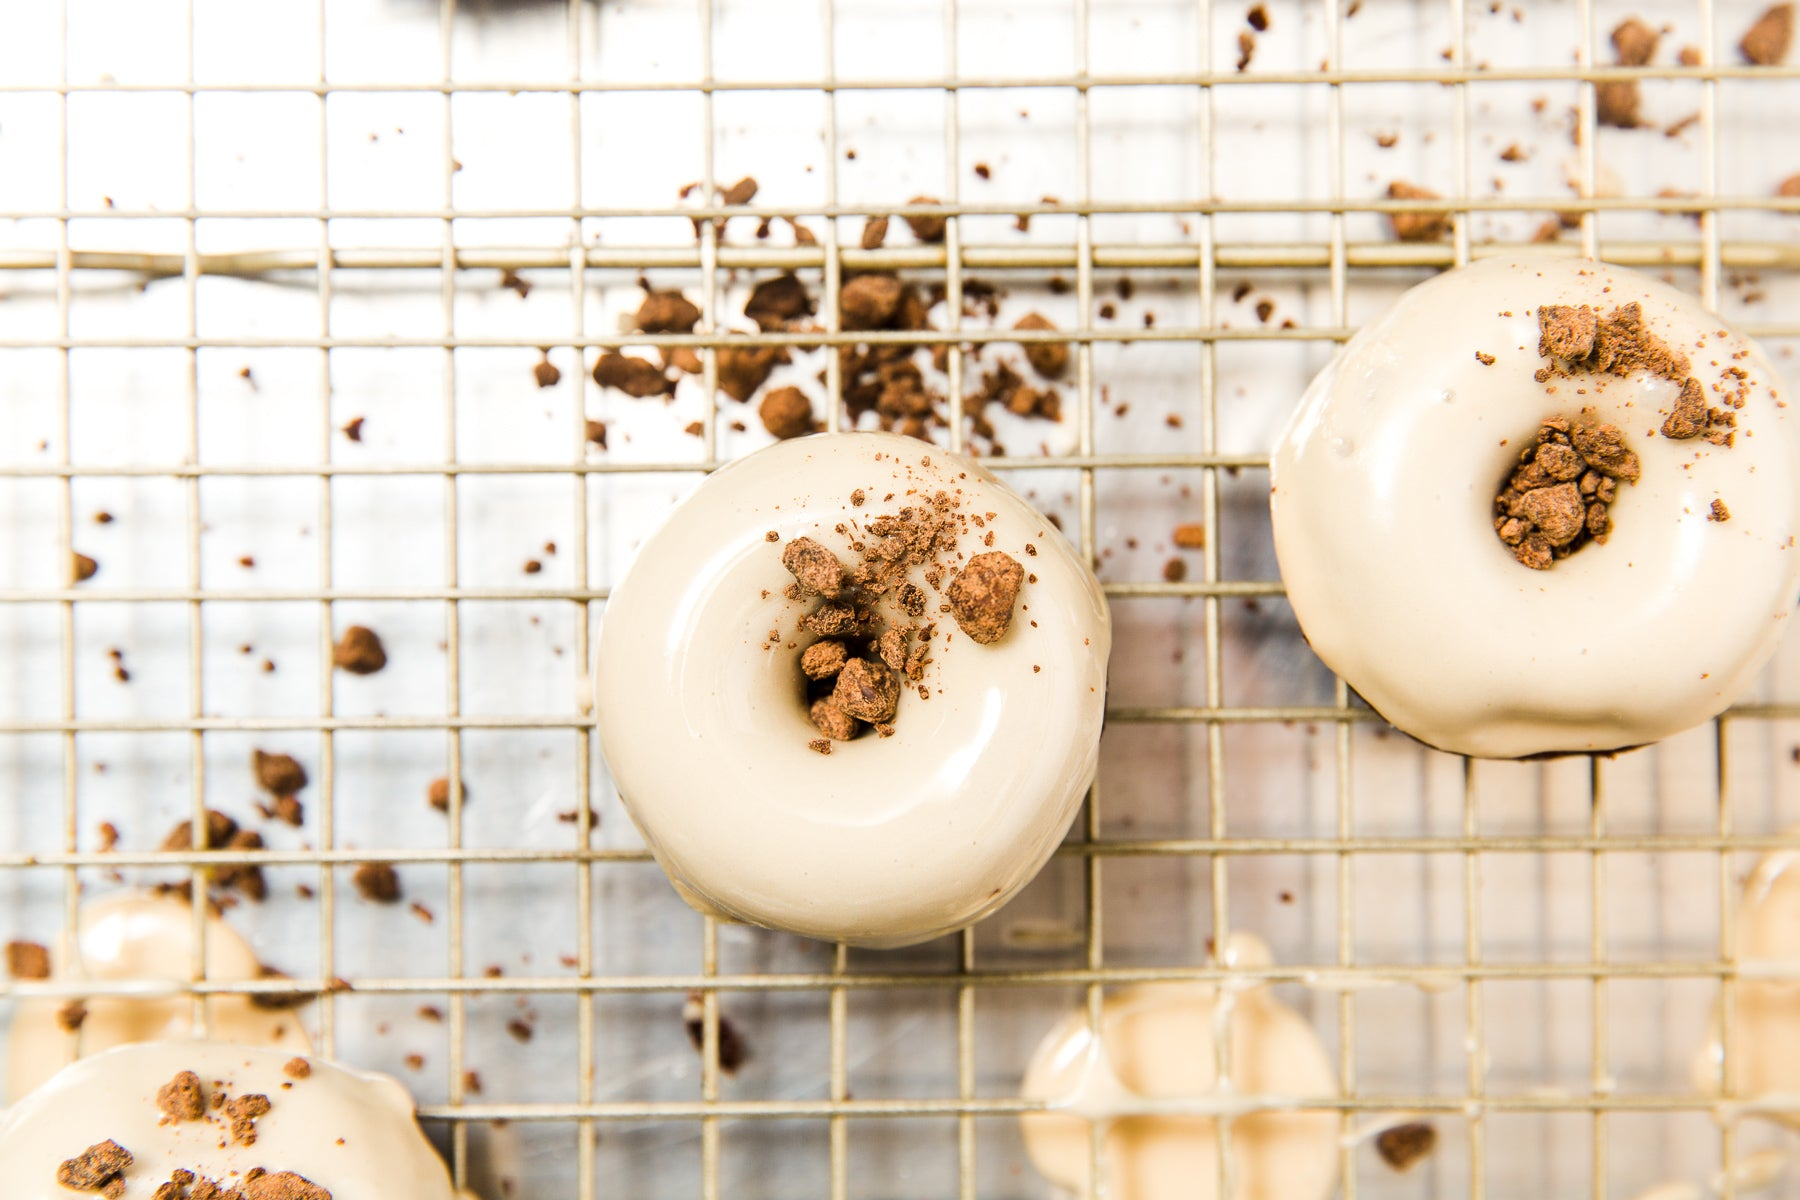 Close up image of two Miss Jones Baking Co Guinness Glazed Chocolate Donuts on a baking rack